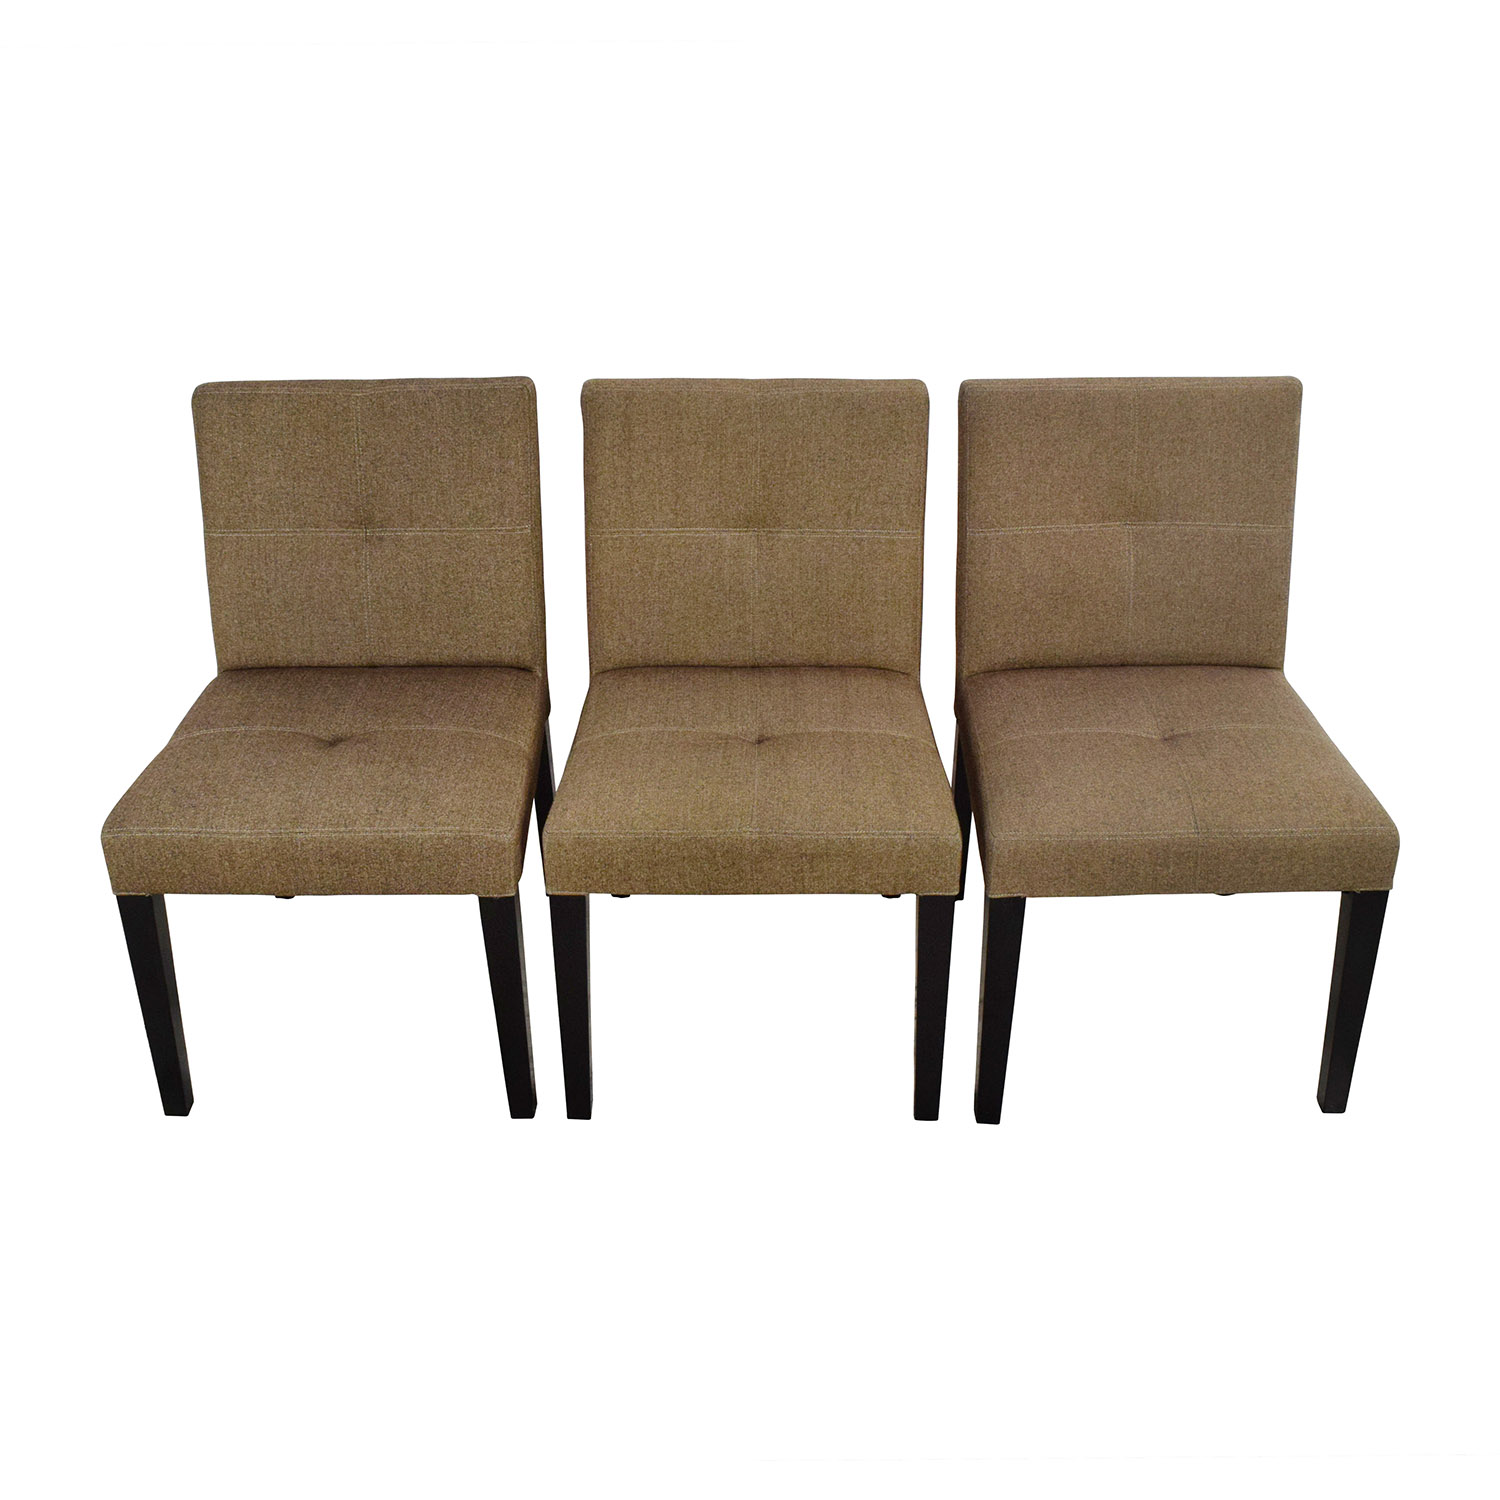 ... Shop Crate And Barrel Crate U0026 Barrel Epoch Chairs Online ...